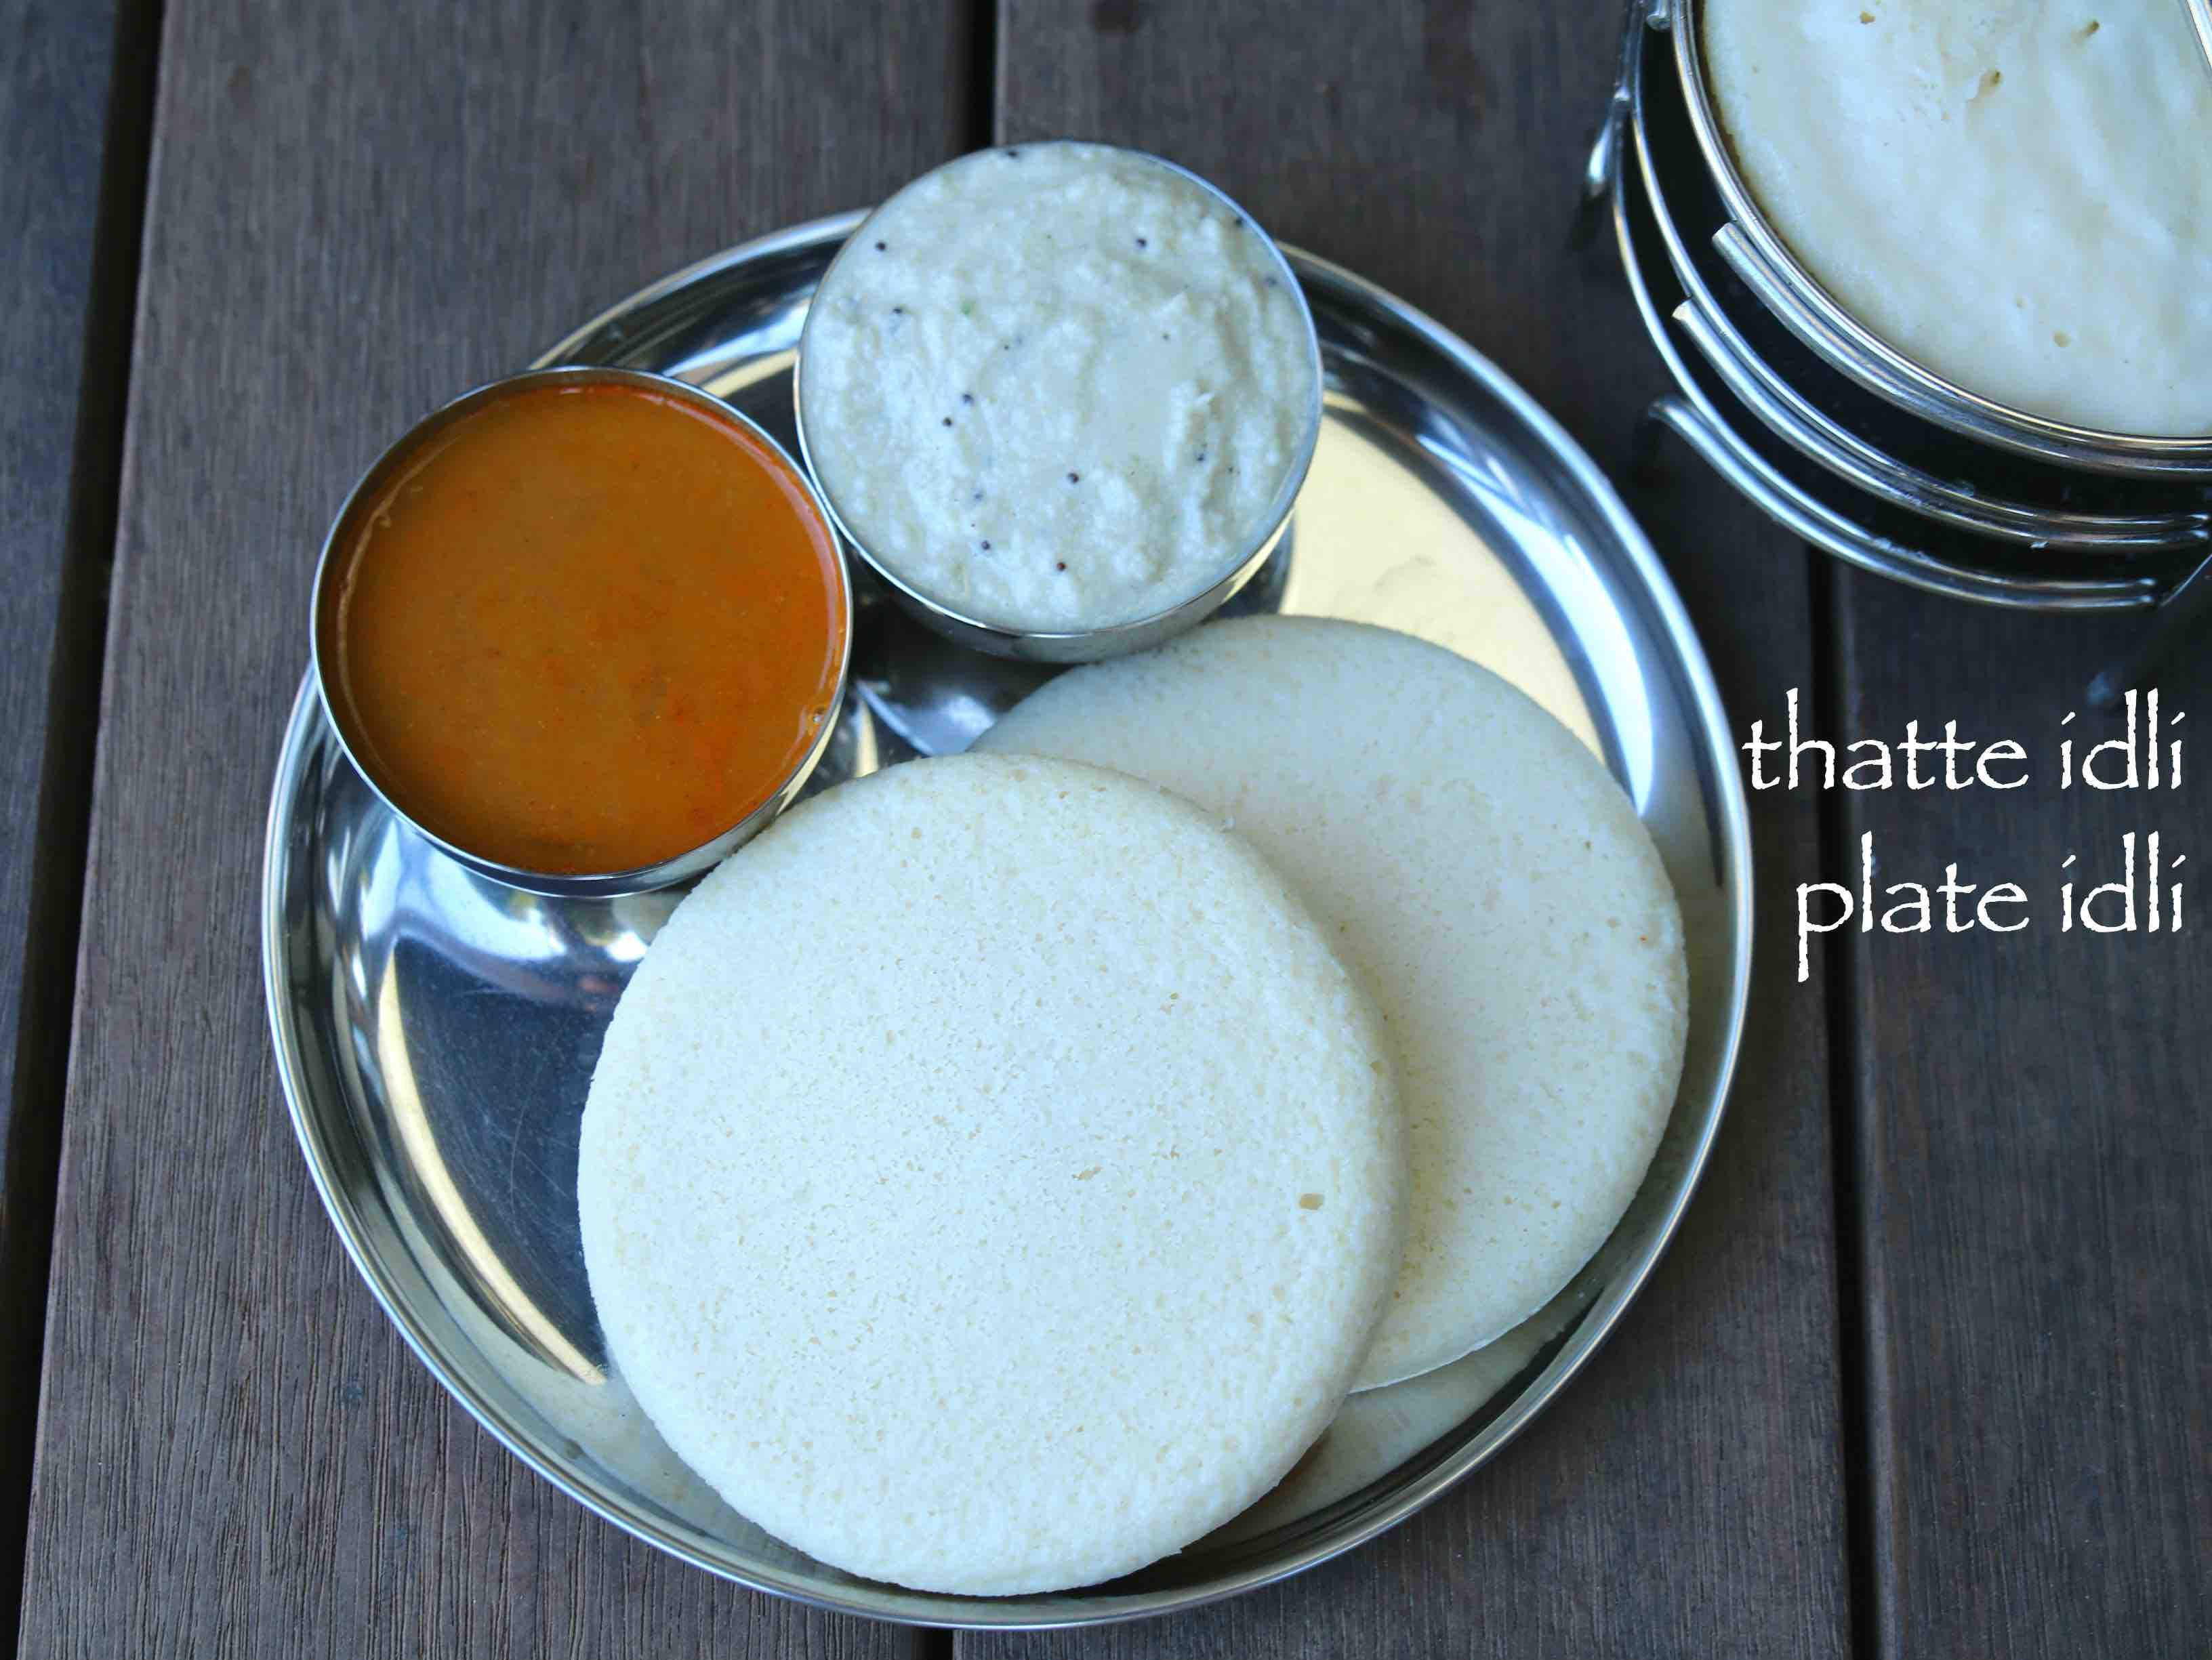 thatte idli recipe, tatte idli or plate idli, how to make thatte ...